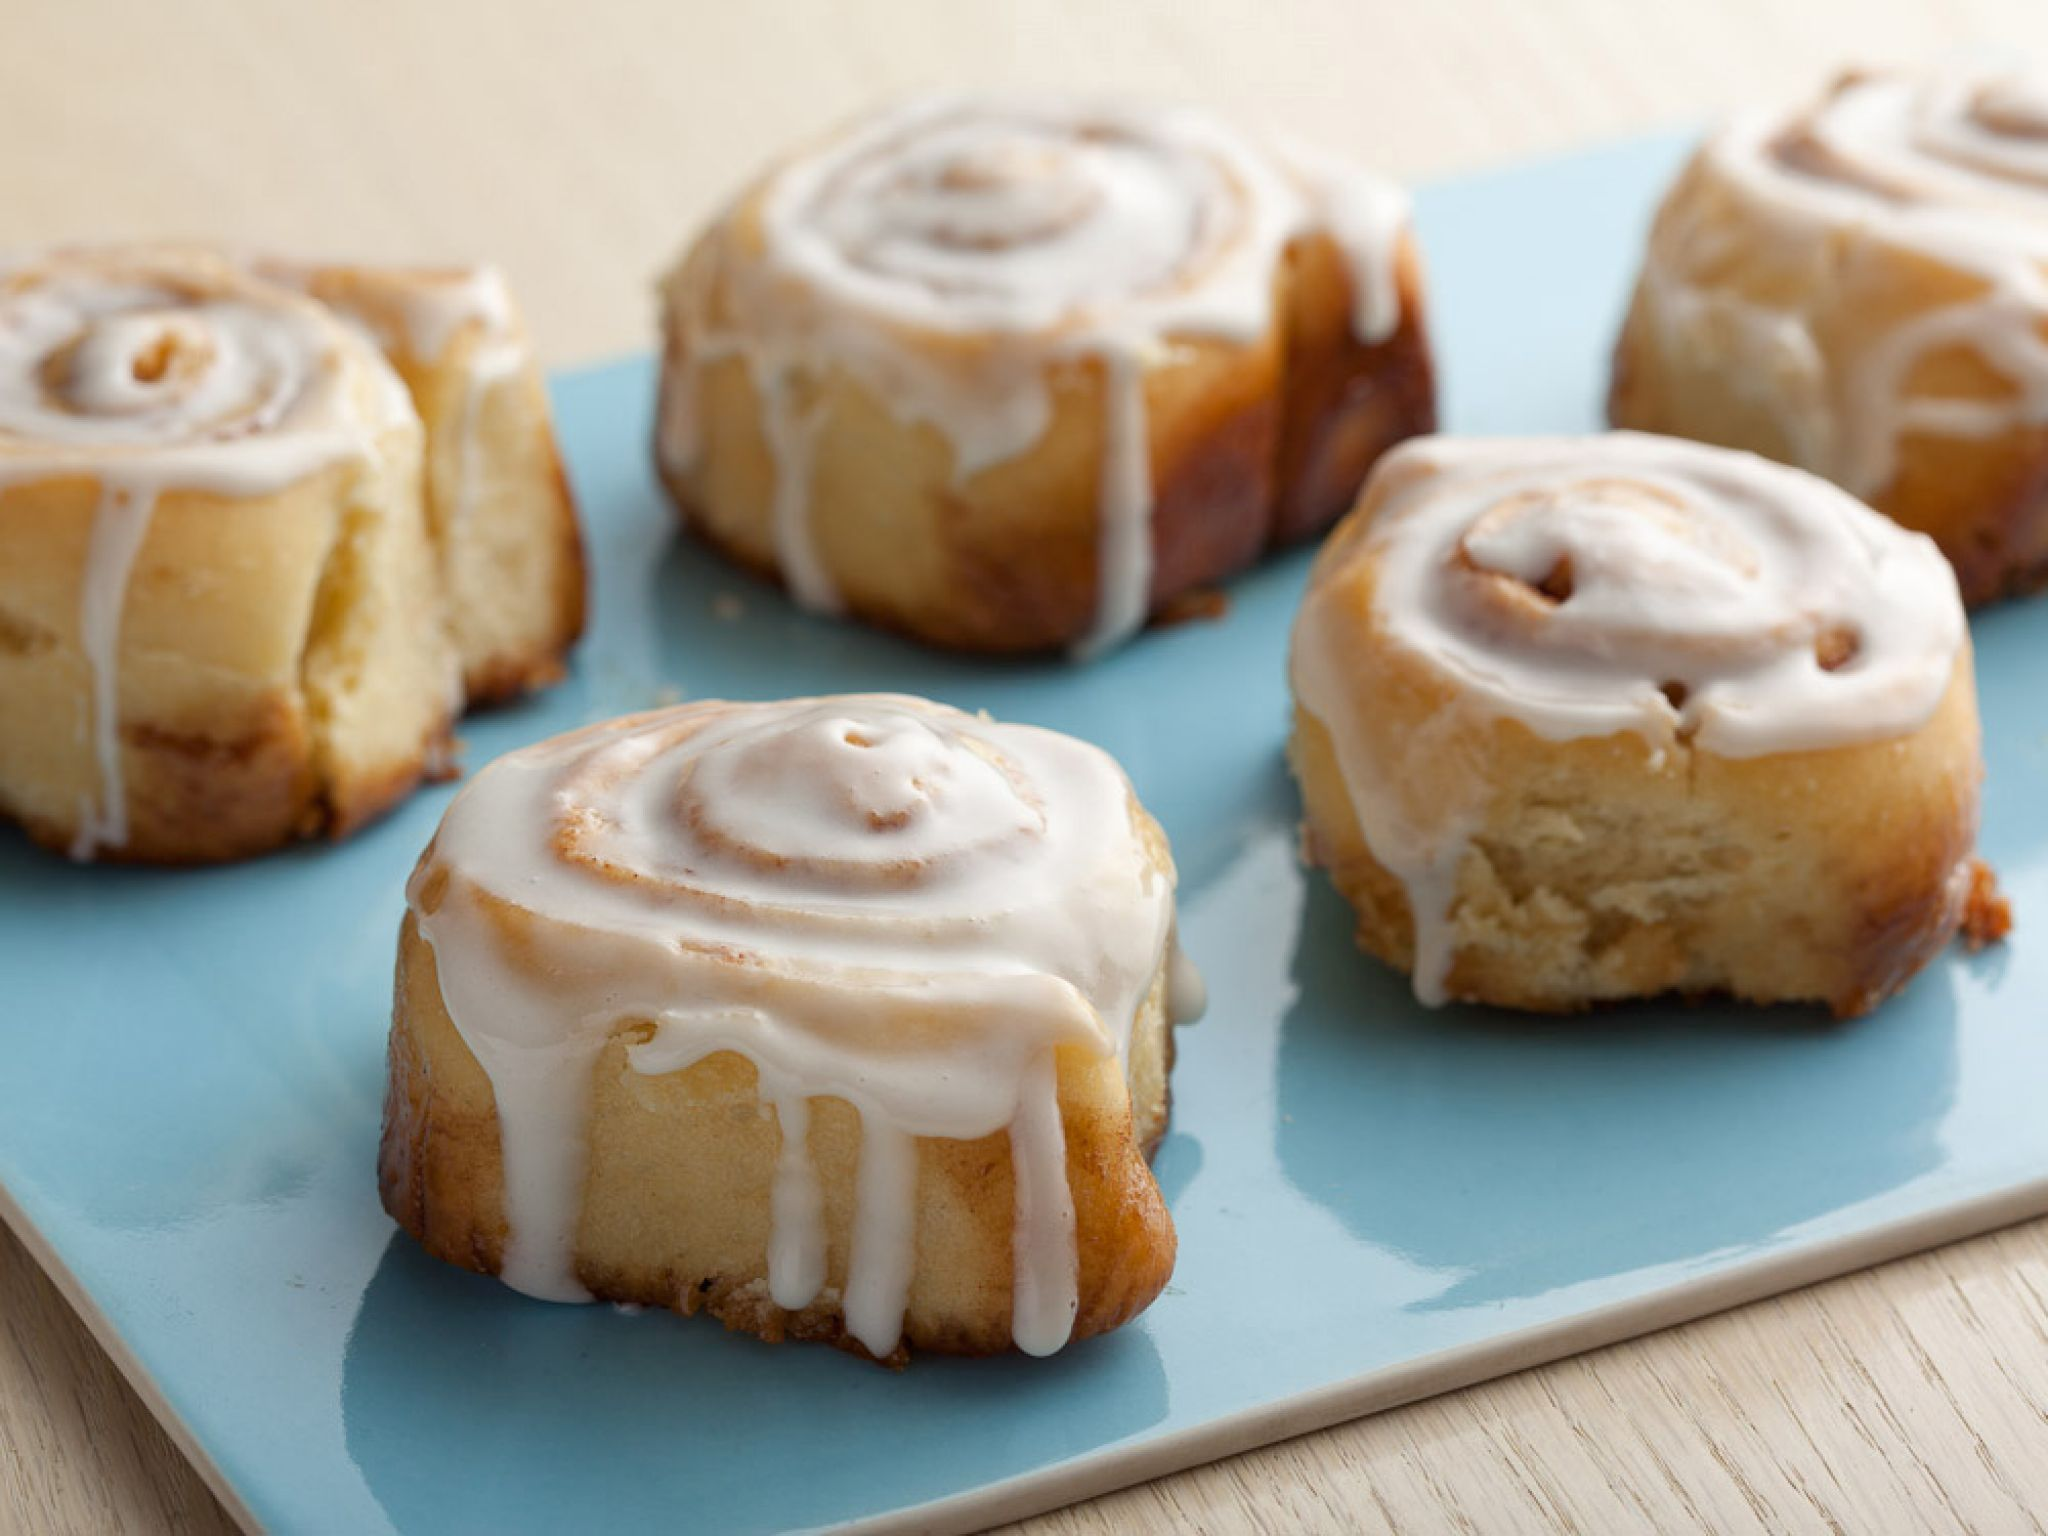 Overnight Cinnamon Rolls Recipe Overnight Cinnamon Rolls Overnight Cinnamon Rolls Recipe Food Network Recipes